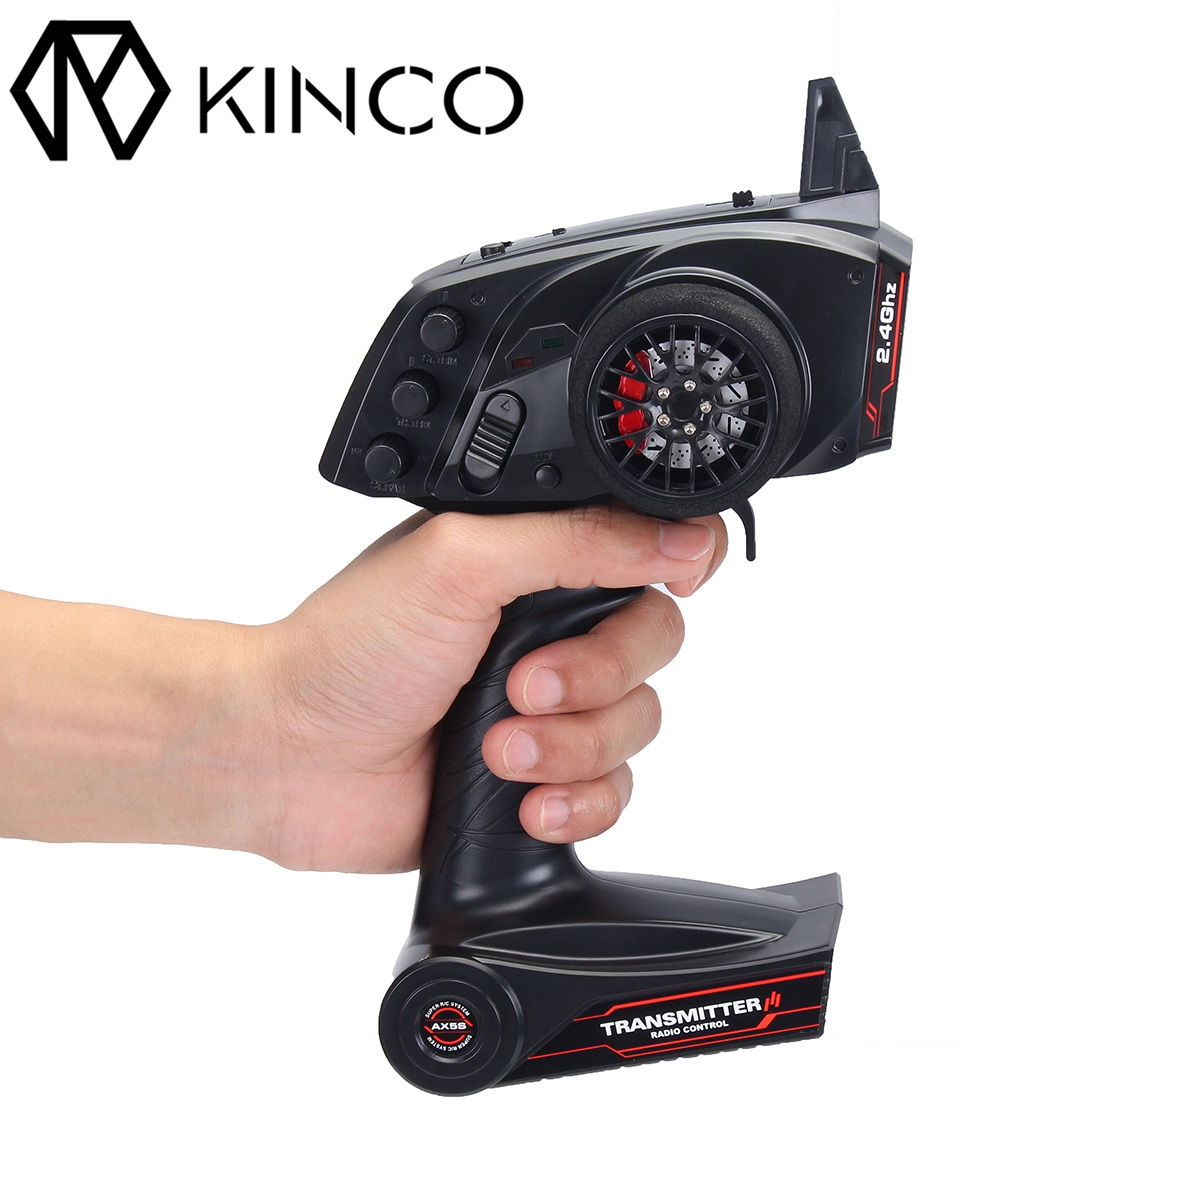 KINCO Radio Remote Control Transmitter 2.4G 3CH AFHS With Receiver For RC Car/Boat Model Toys Part Toys Hobbies goolrc brand ax5s 2 4g 3ch afhs radio rc transmitter with receiver super active passive anti jamming for rc car boat